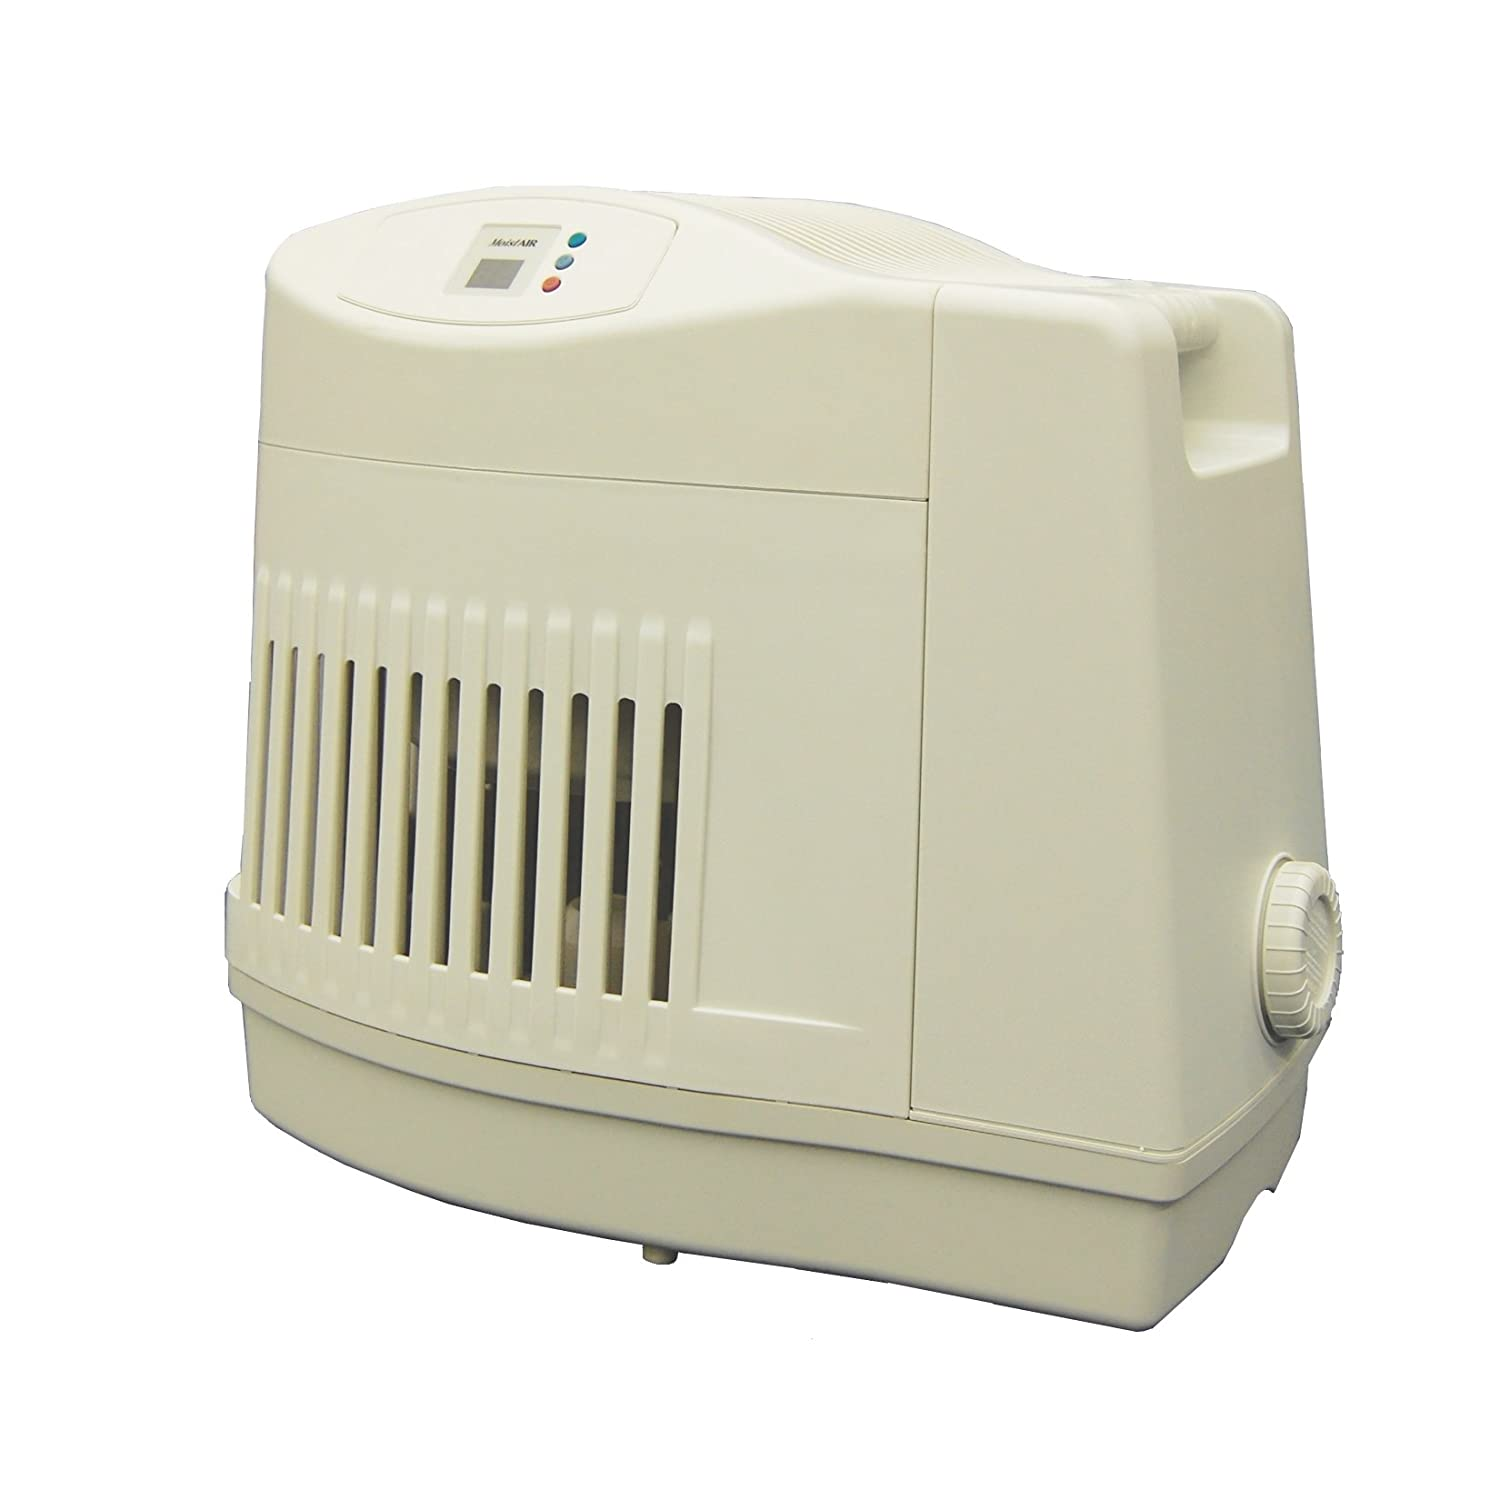 & Humidifiers: Reviews Ratings & Buying Tips Safe Sound Family #3B6C76